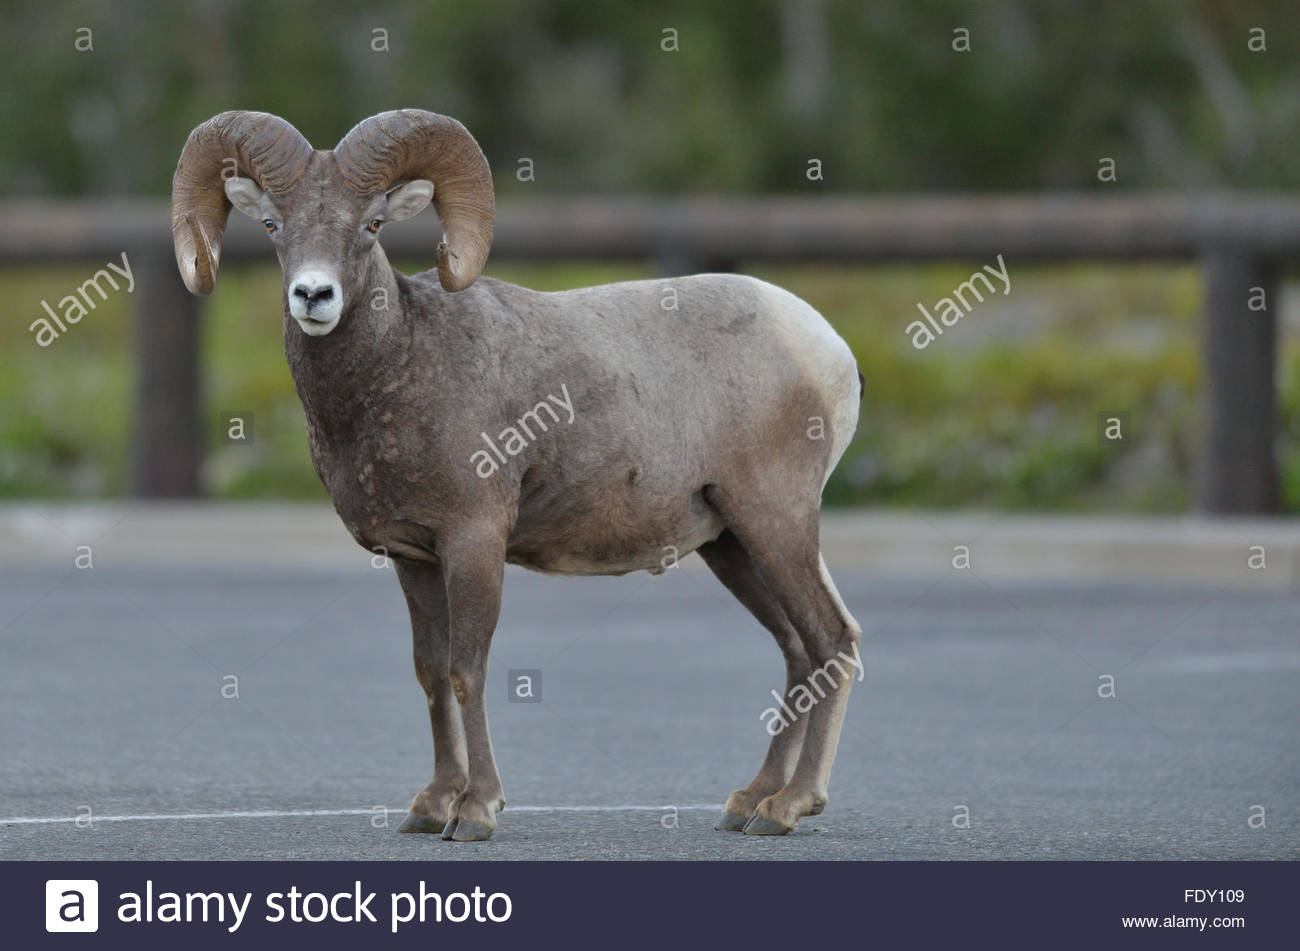 Bighorn Sheep (Ovis canadensis) stands in a parking lot near Logan's Pass in Glacier National Park, Montana Stock Photo